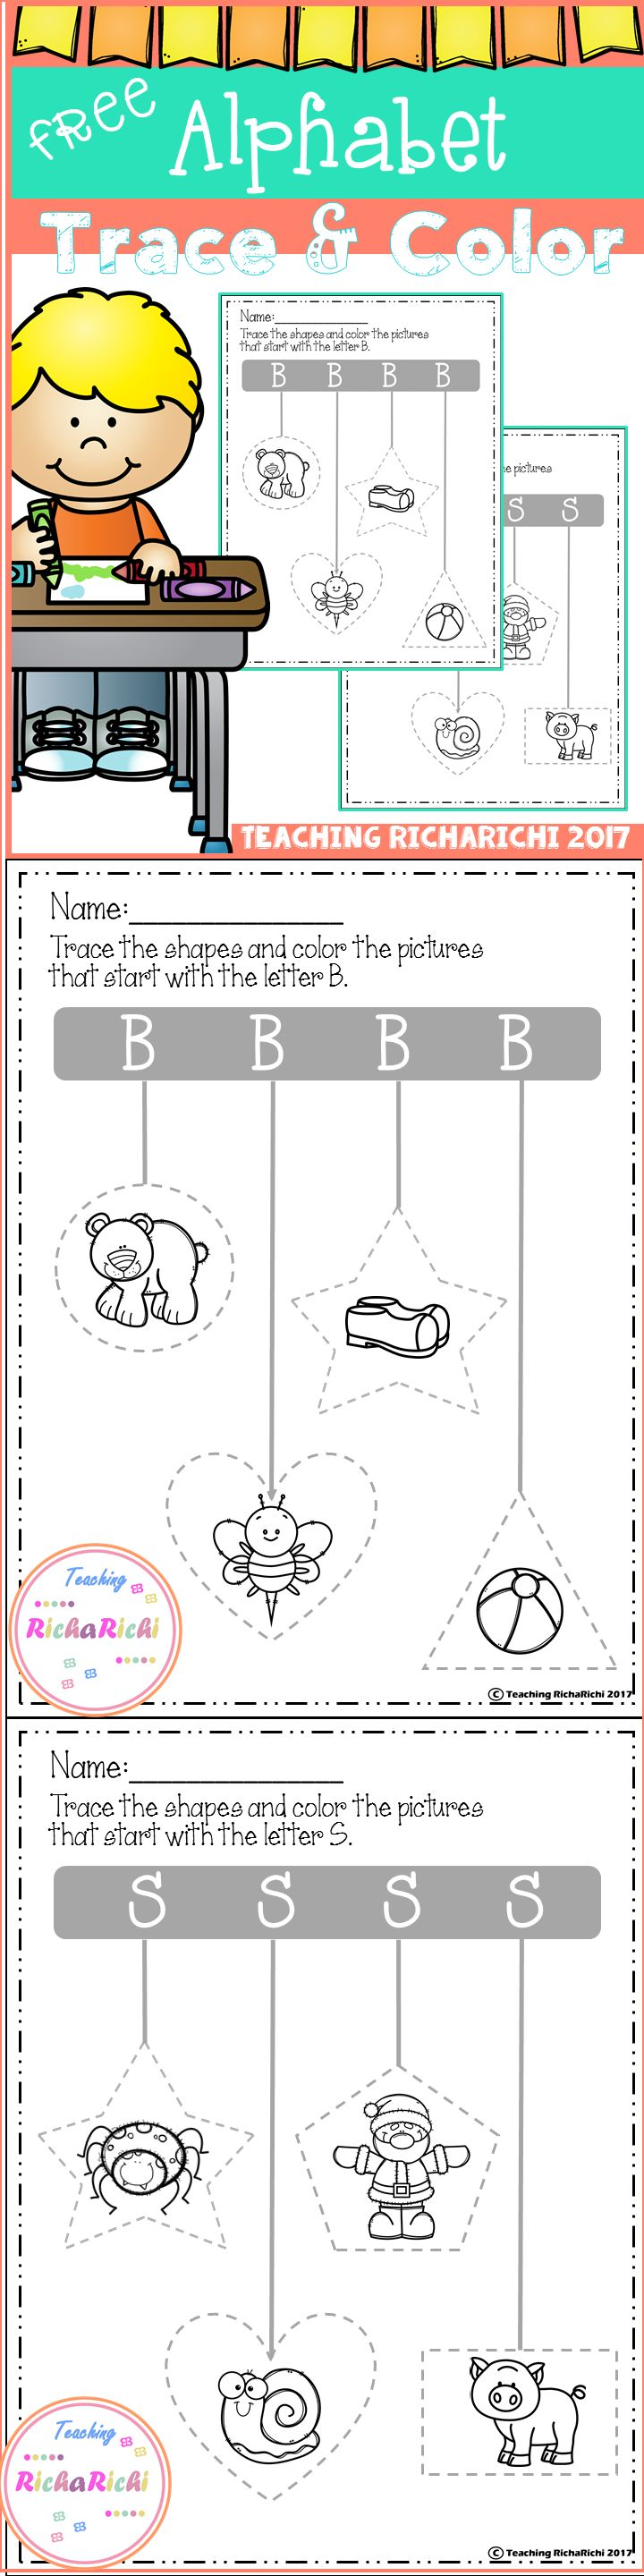 worksheet Pre K Sight Words Worksheets 10 best ideas about sight word worksheets on pinterest freebies free kindergarten activities pre k first grade activities